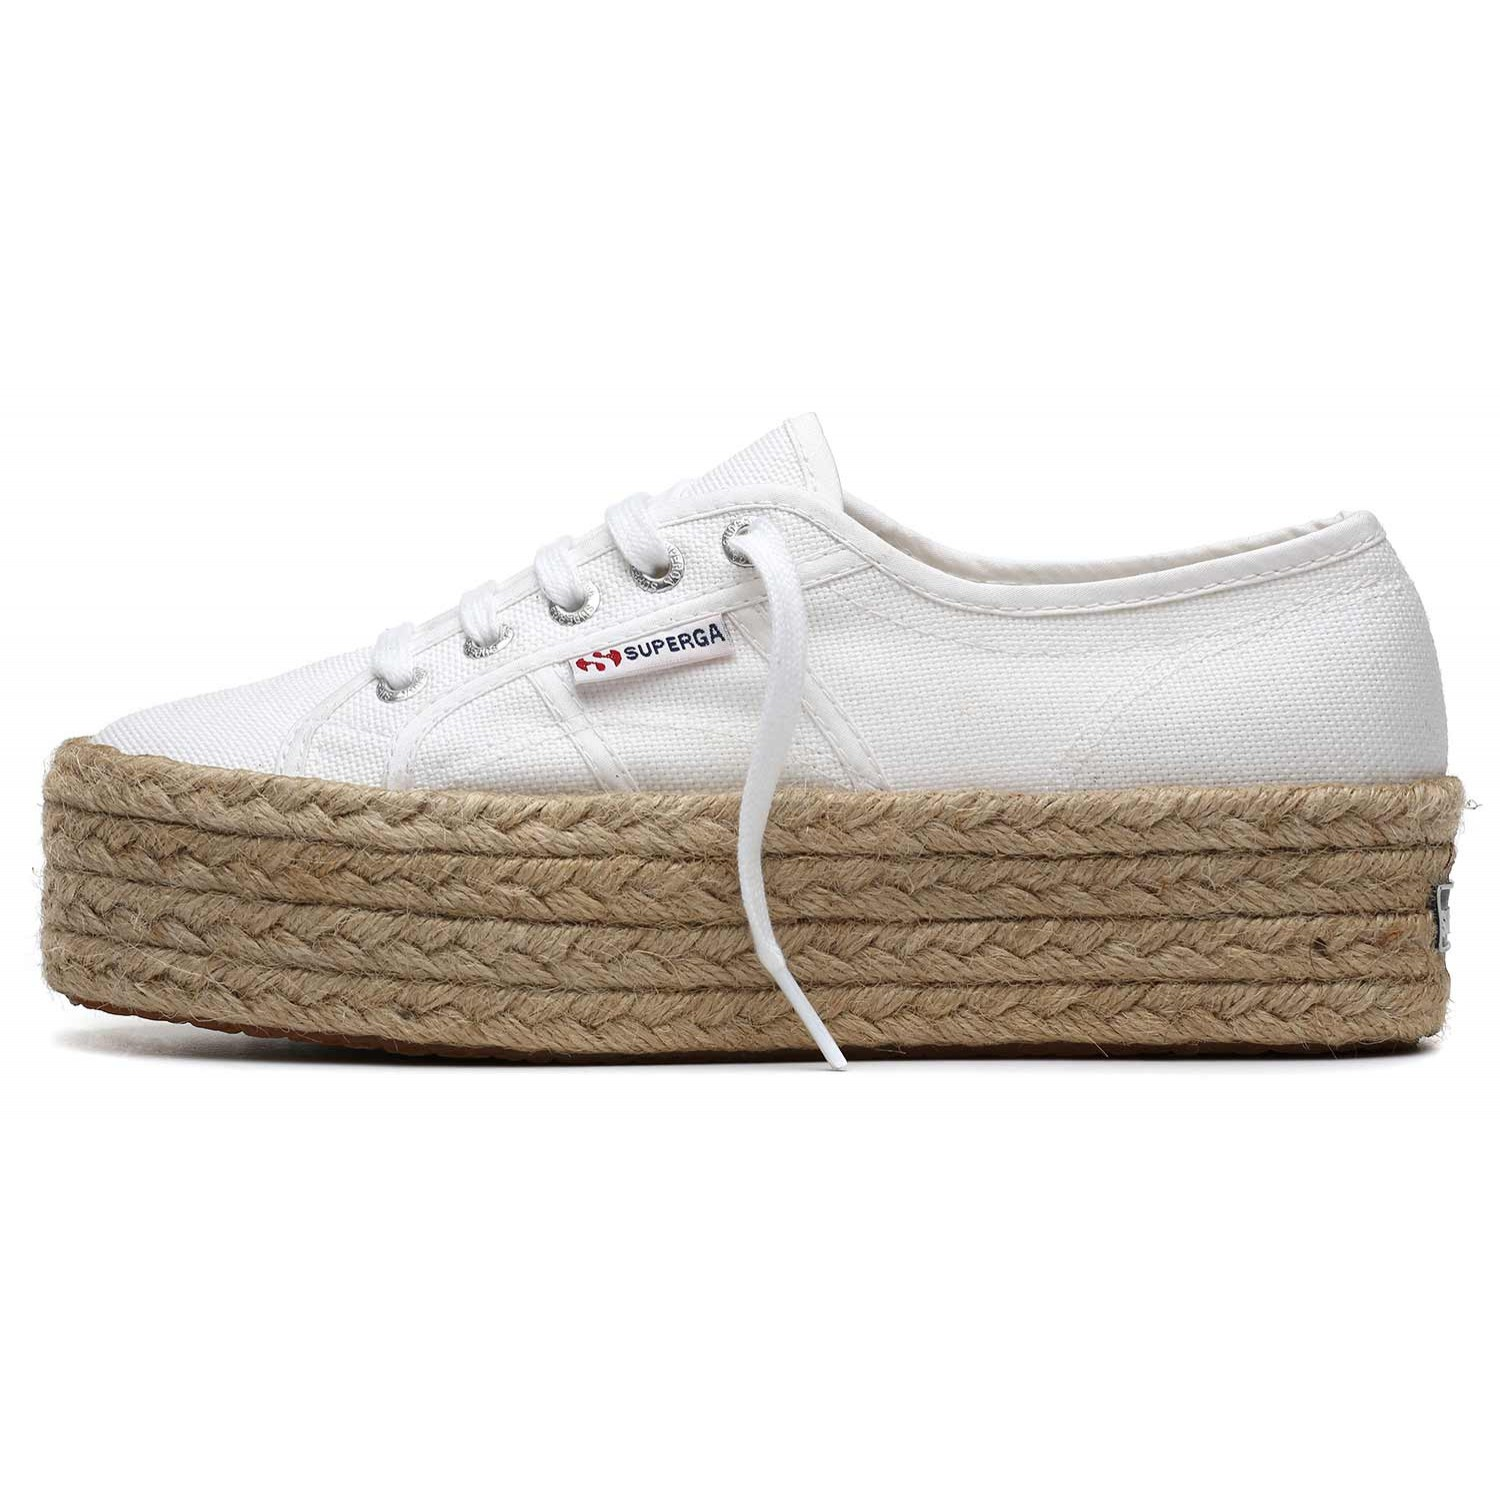 superga sneaker schuhe damenschuhe turnschuhe cotu s0099z0 901 plateau wei ebay. Black Bedroom Furniture Sets. Home Design Ideas